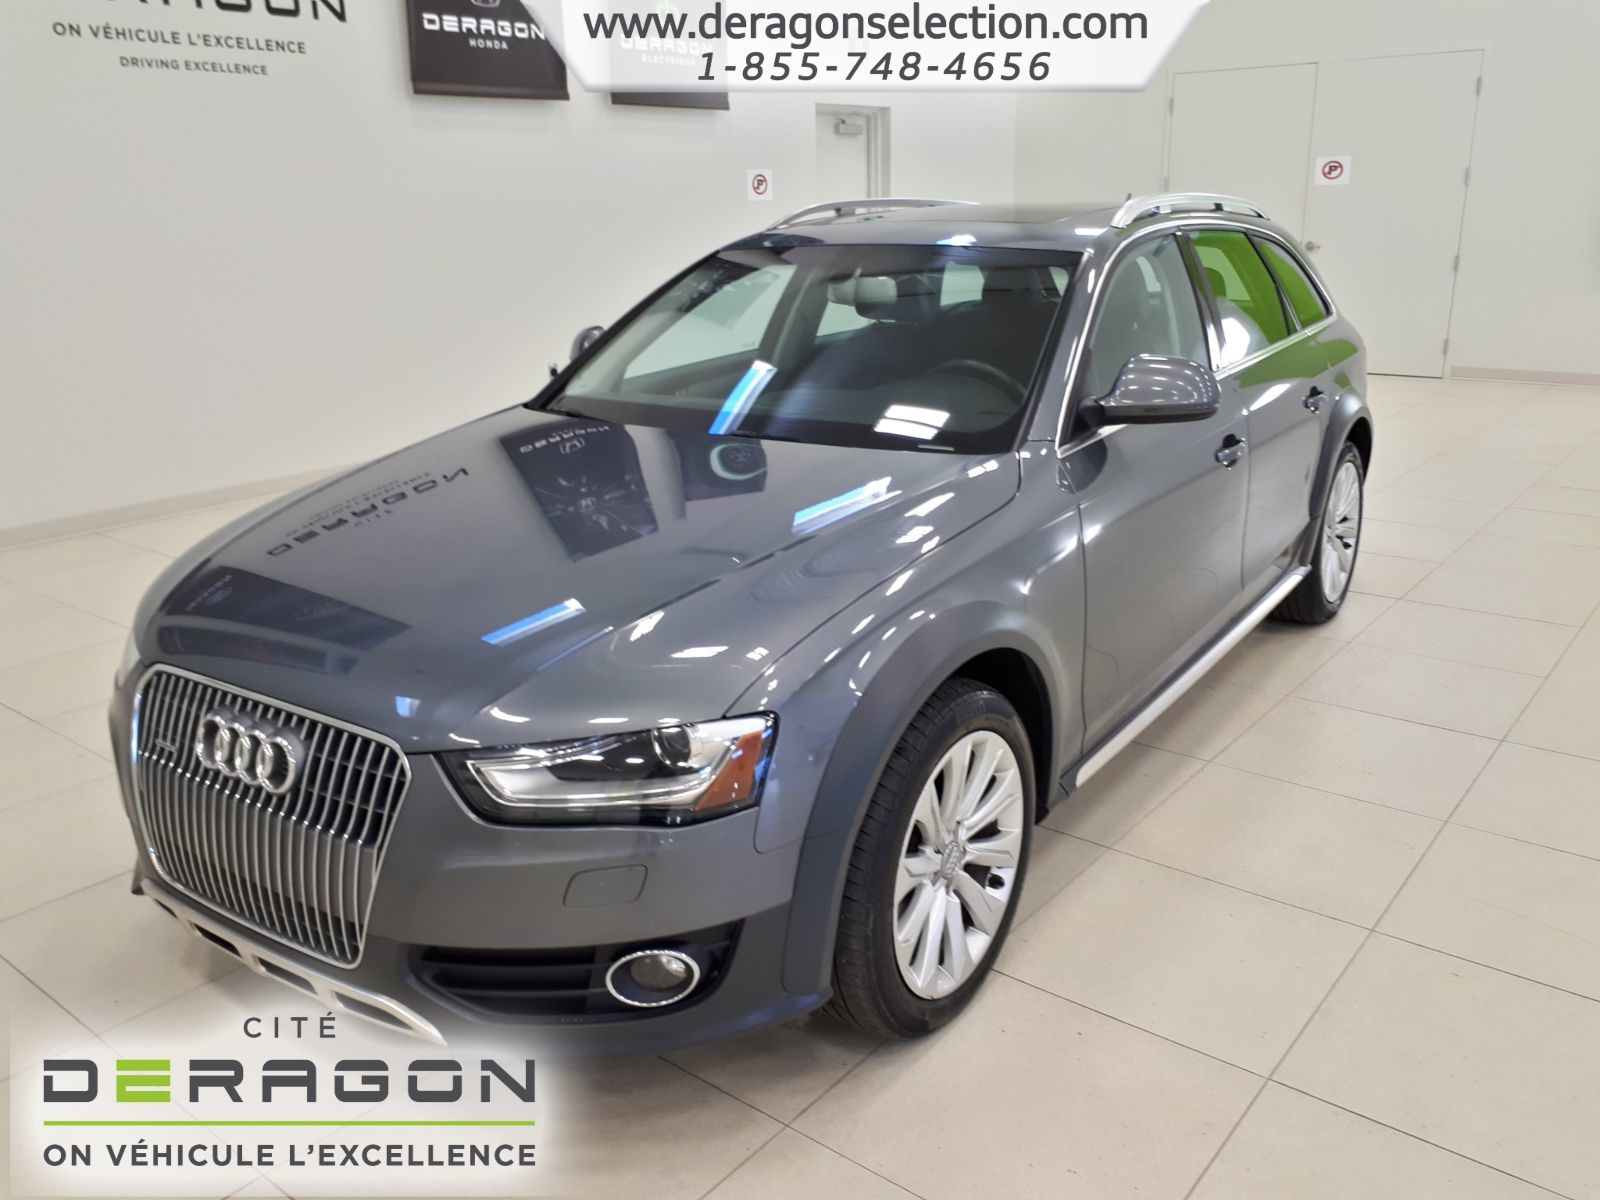 allroad qc prices blogue audi for specifications sedan sale and vehicles htm blainville in